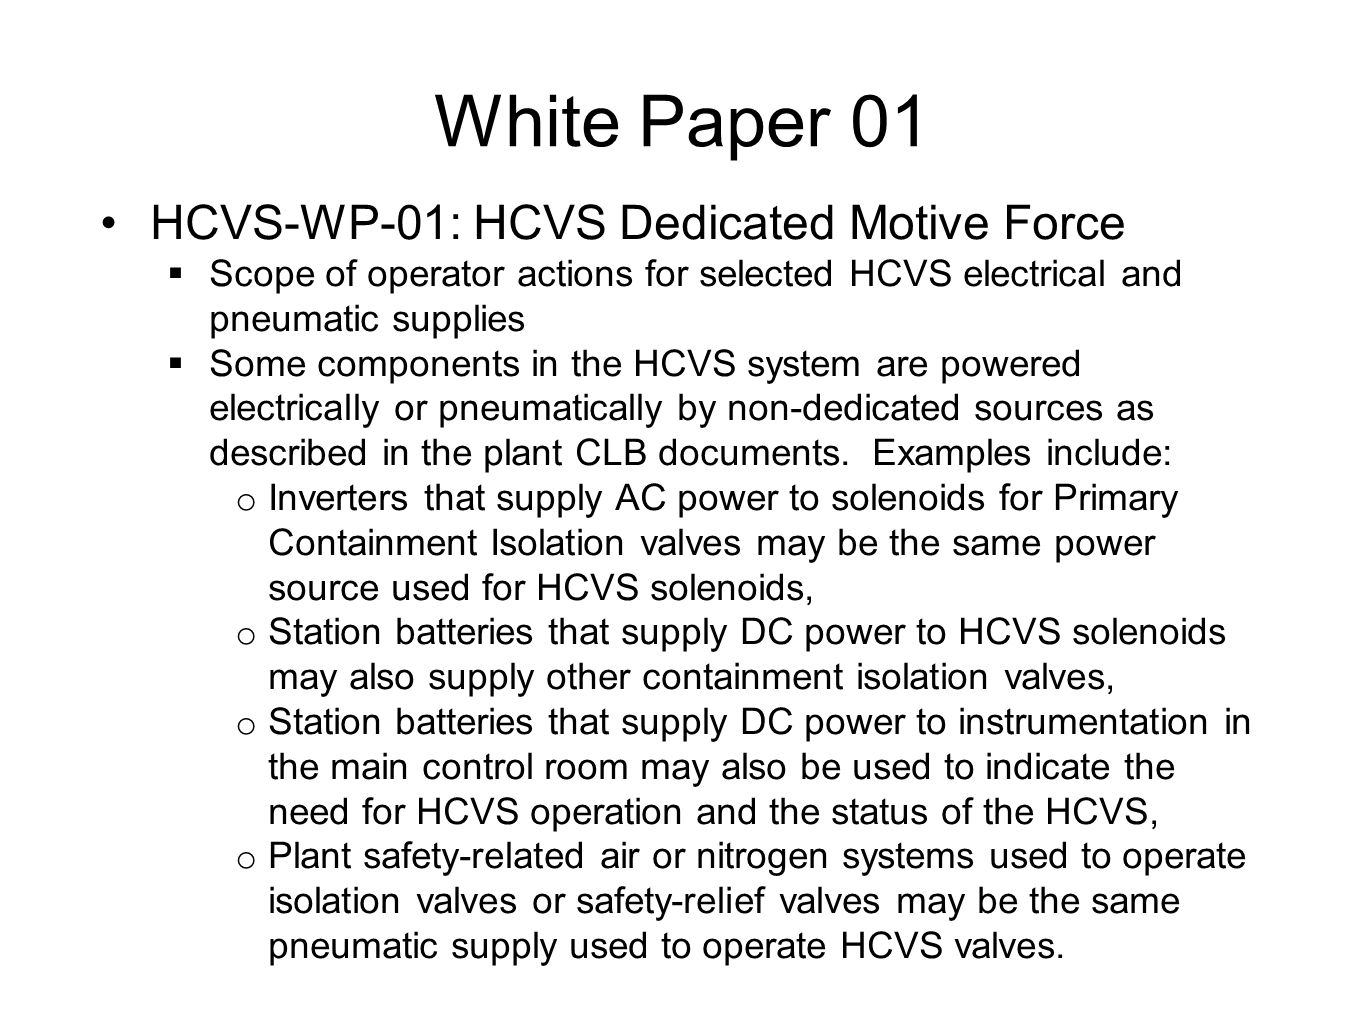 White Paper 01 HCVS-WP-01: HCVS Dedicated Motive Force  Scope of operator actions for selected HCVS electrical and pneumatic supplies  Some componen